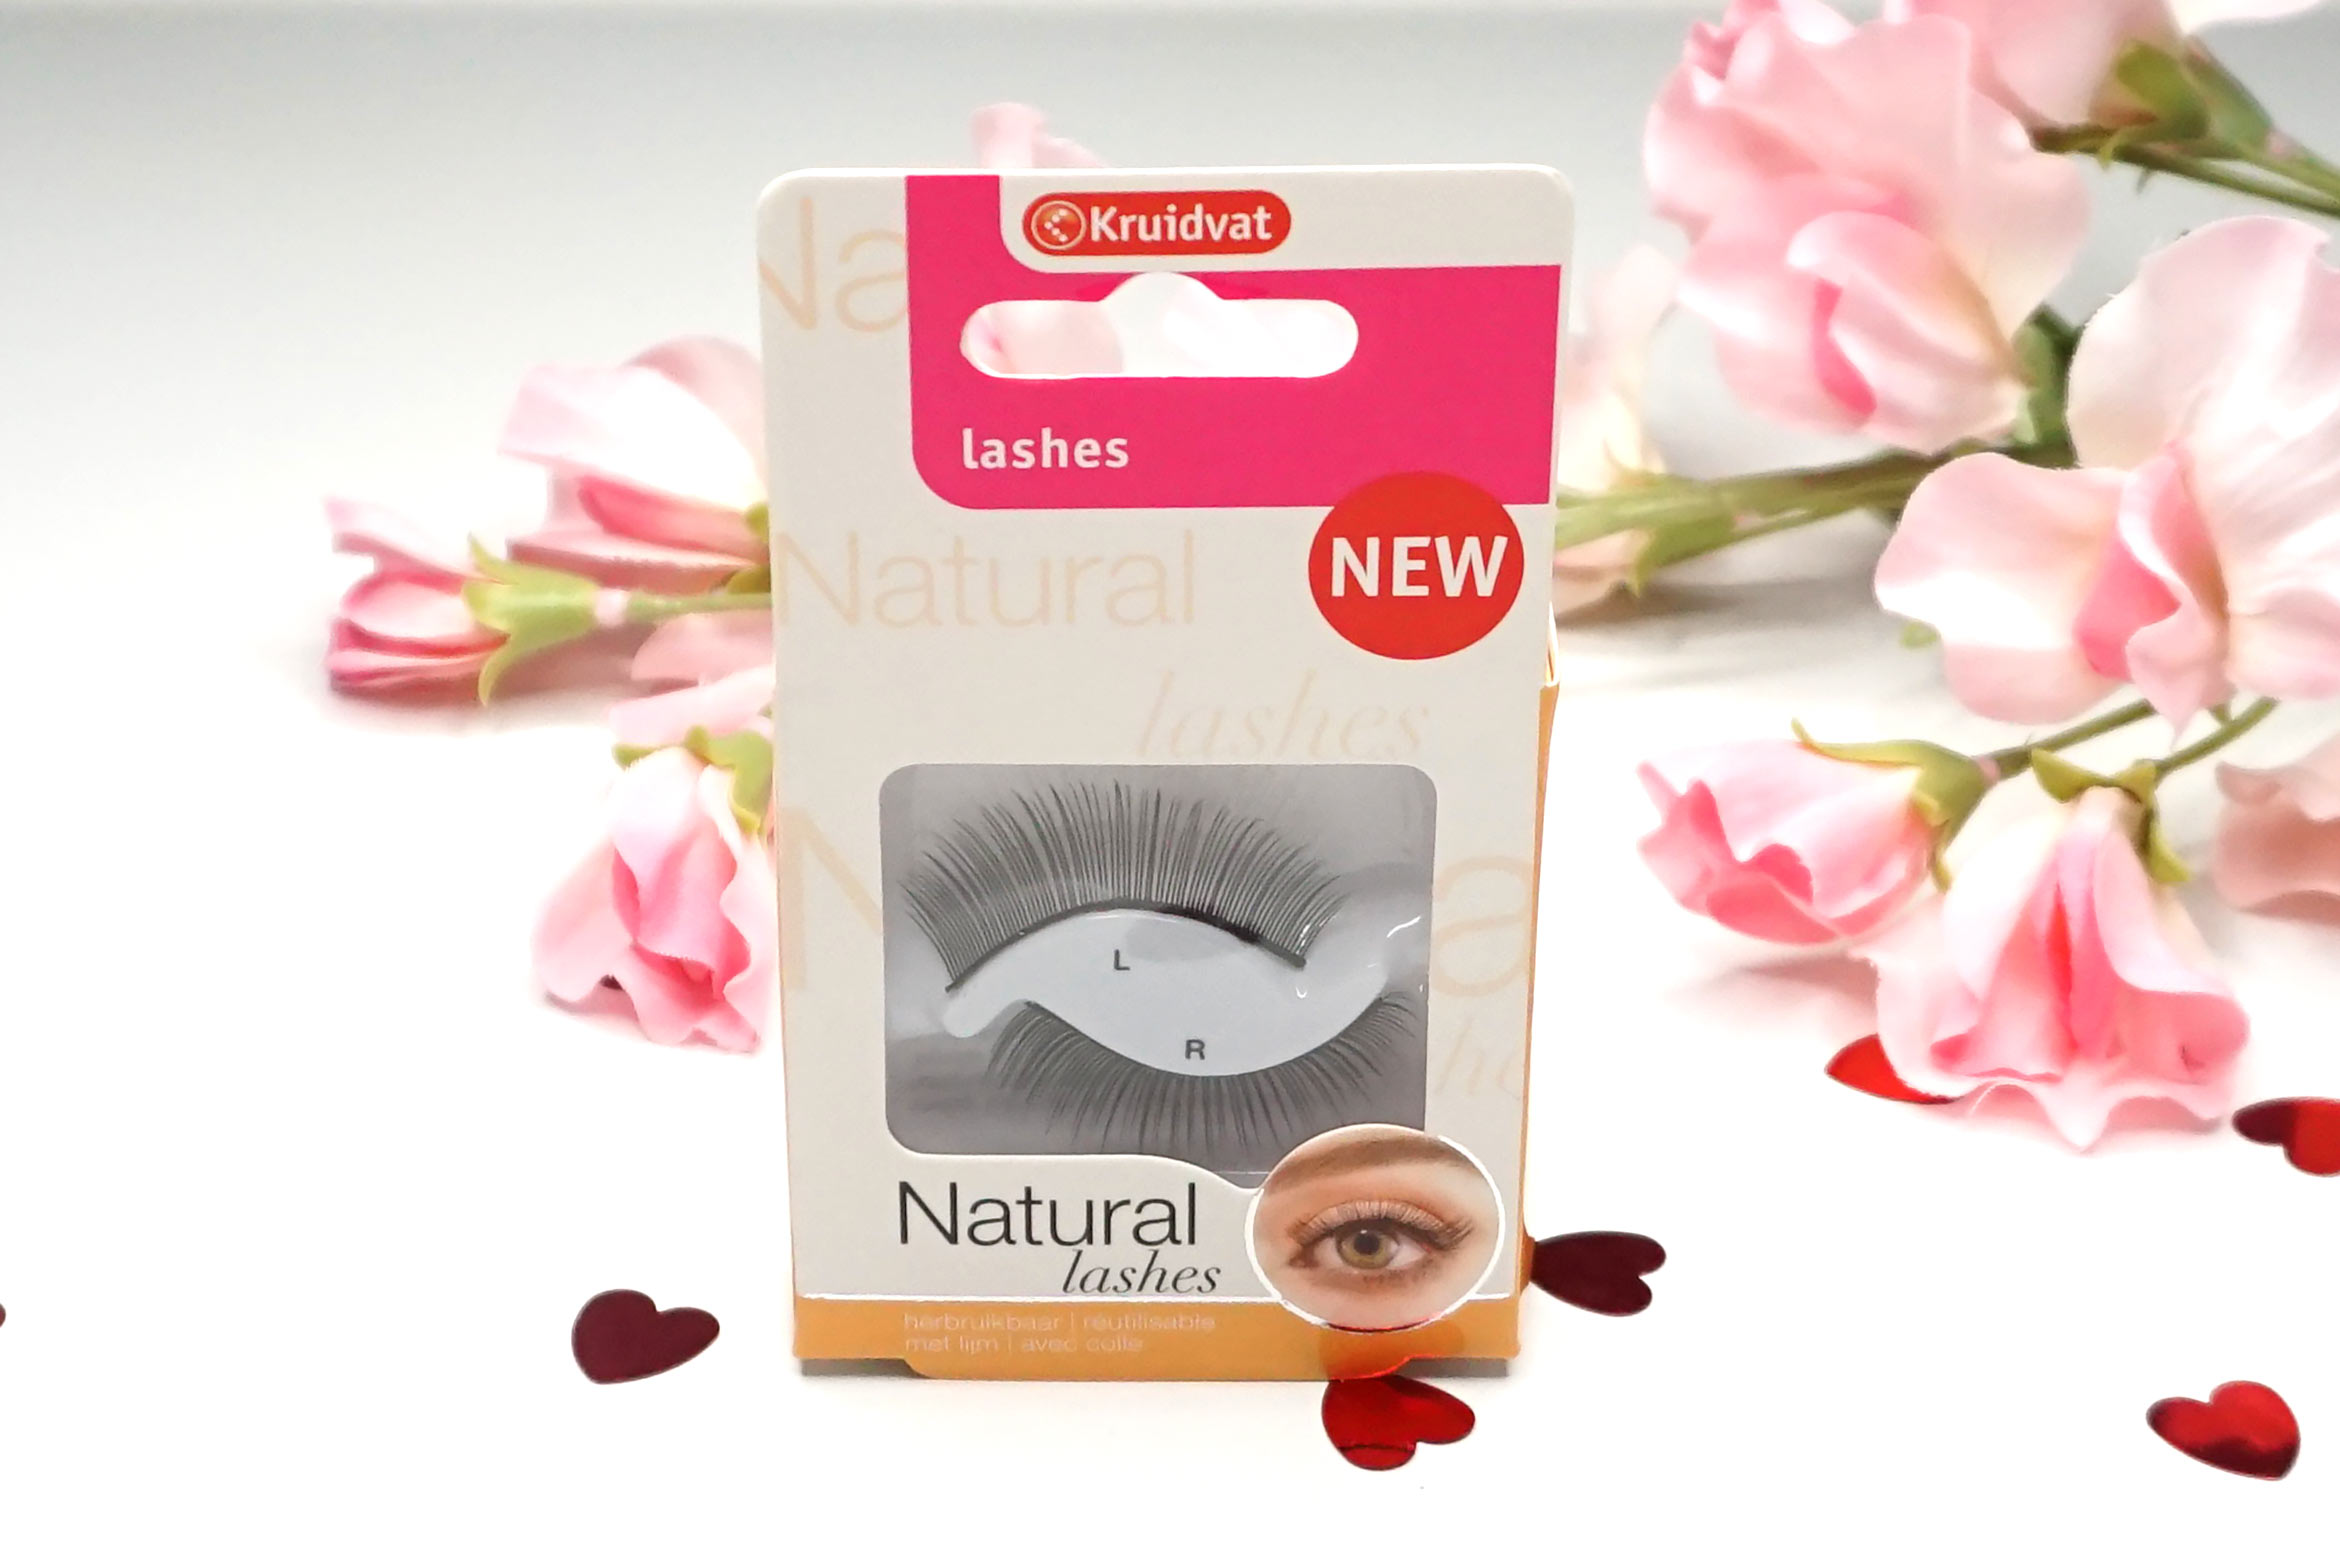 kruidvat-natural-lashes-review